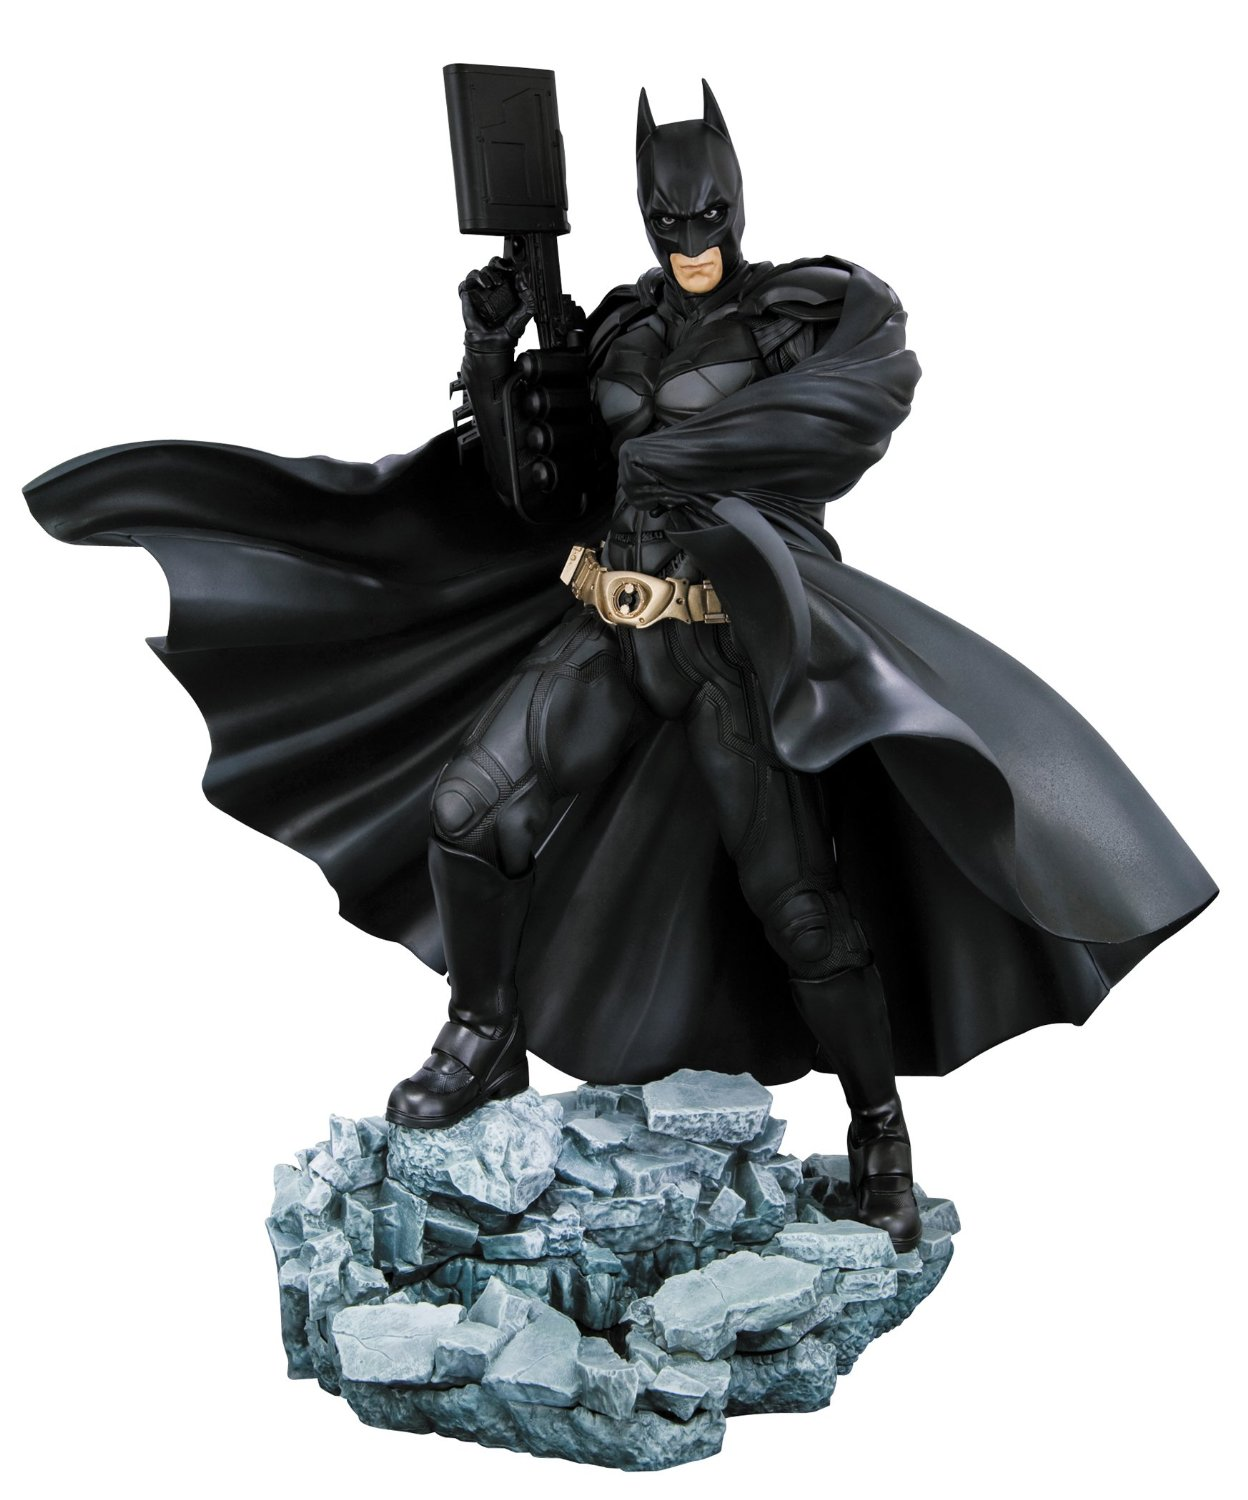 Batman: The Dark Knight Rises ArtFX Statue by Kotobukiya